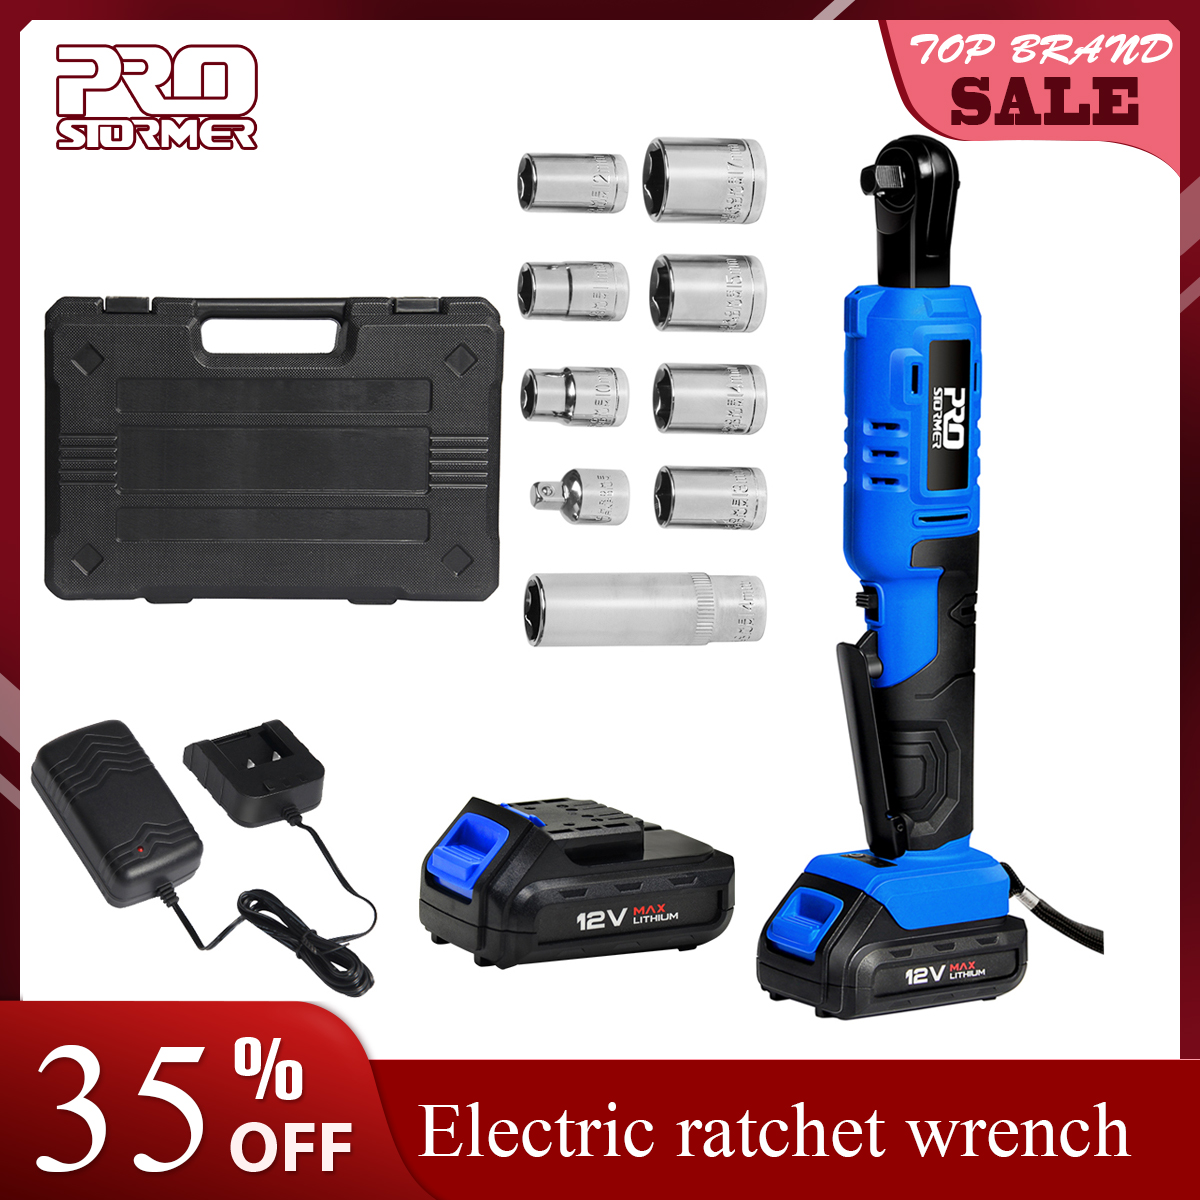 PROSTORMER 12V Electric Ratchet Wrench Cordless Wrench 45NM Torque 3/8 inch 2000mAh Rechargeable Battery Standable Power Tools-in Electric Wrenches from Tools    1